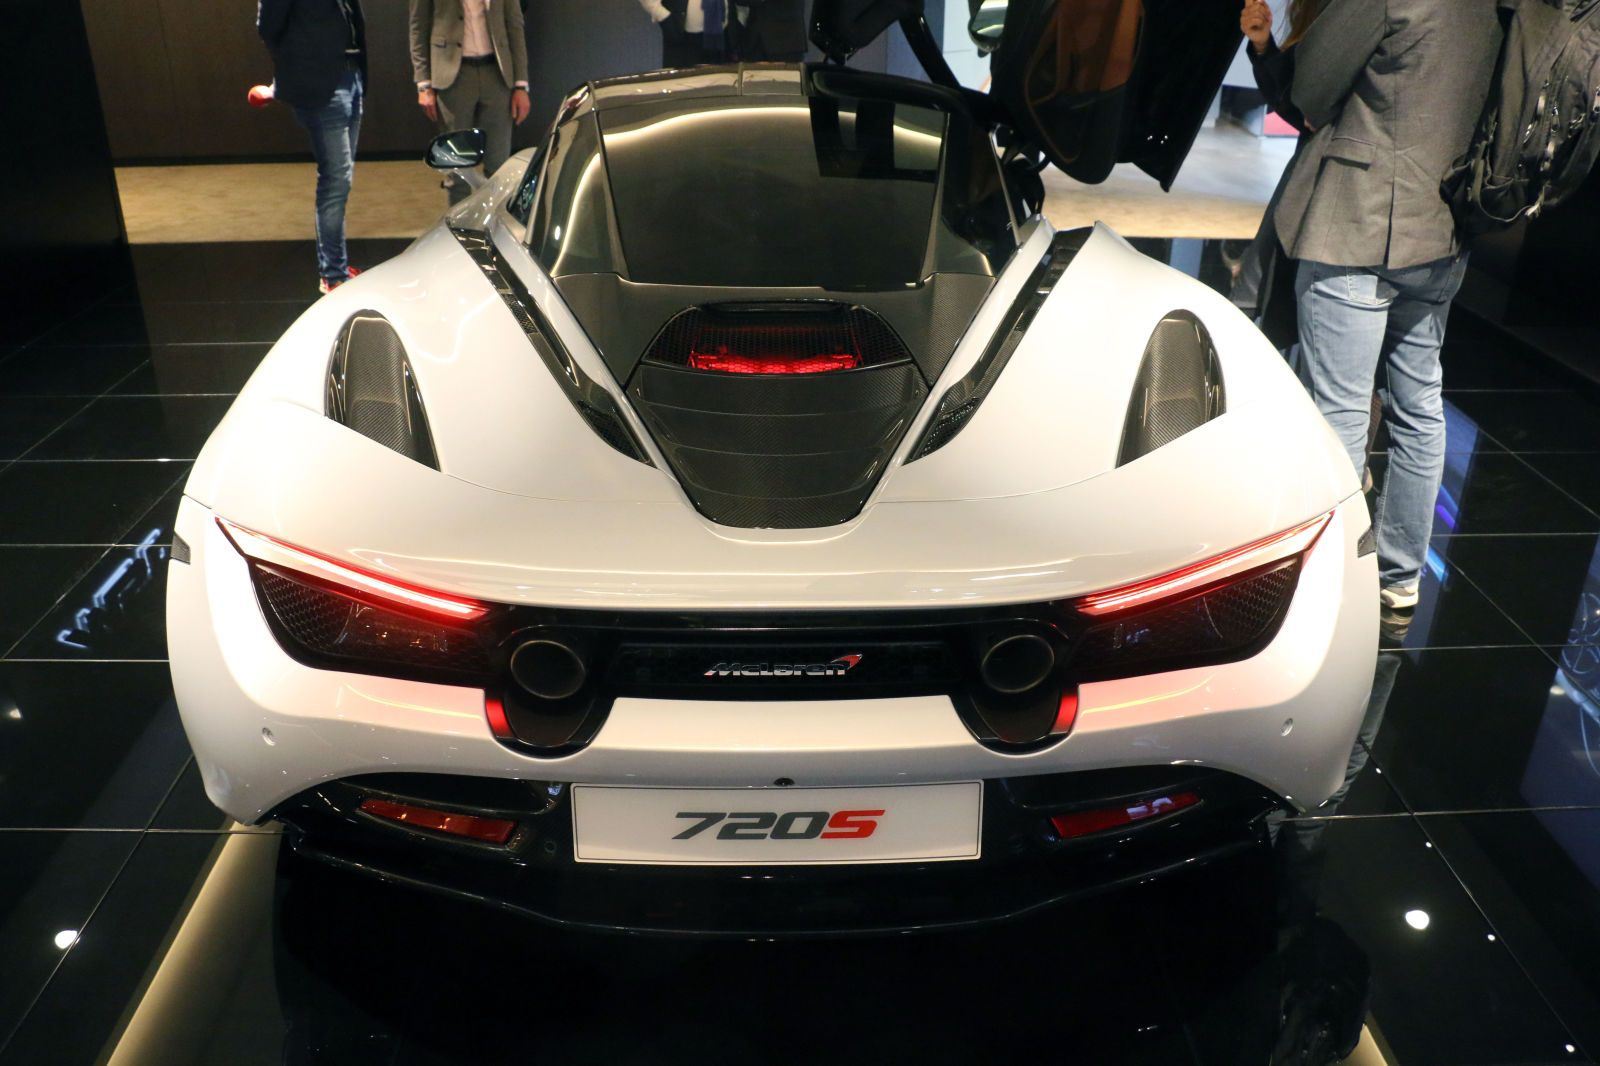 Meet The Unhinged Aeromonster That Is The Mclaren 720s Super Cars Car Show Top Cars